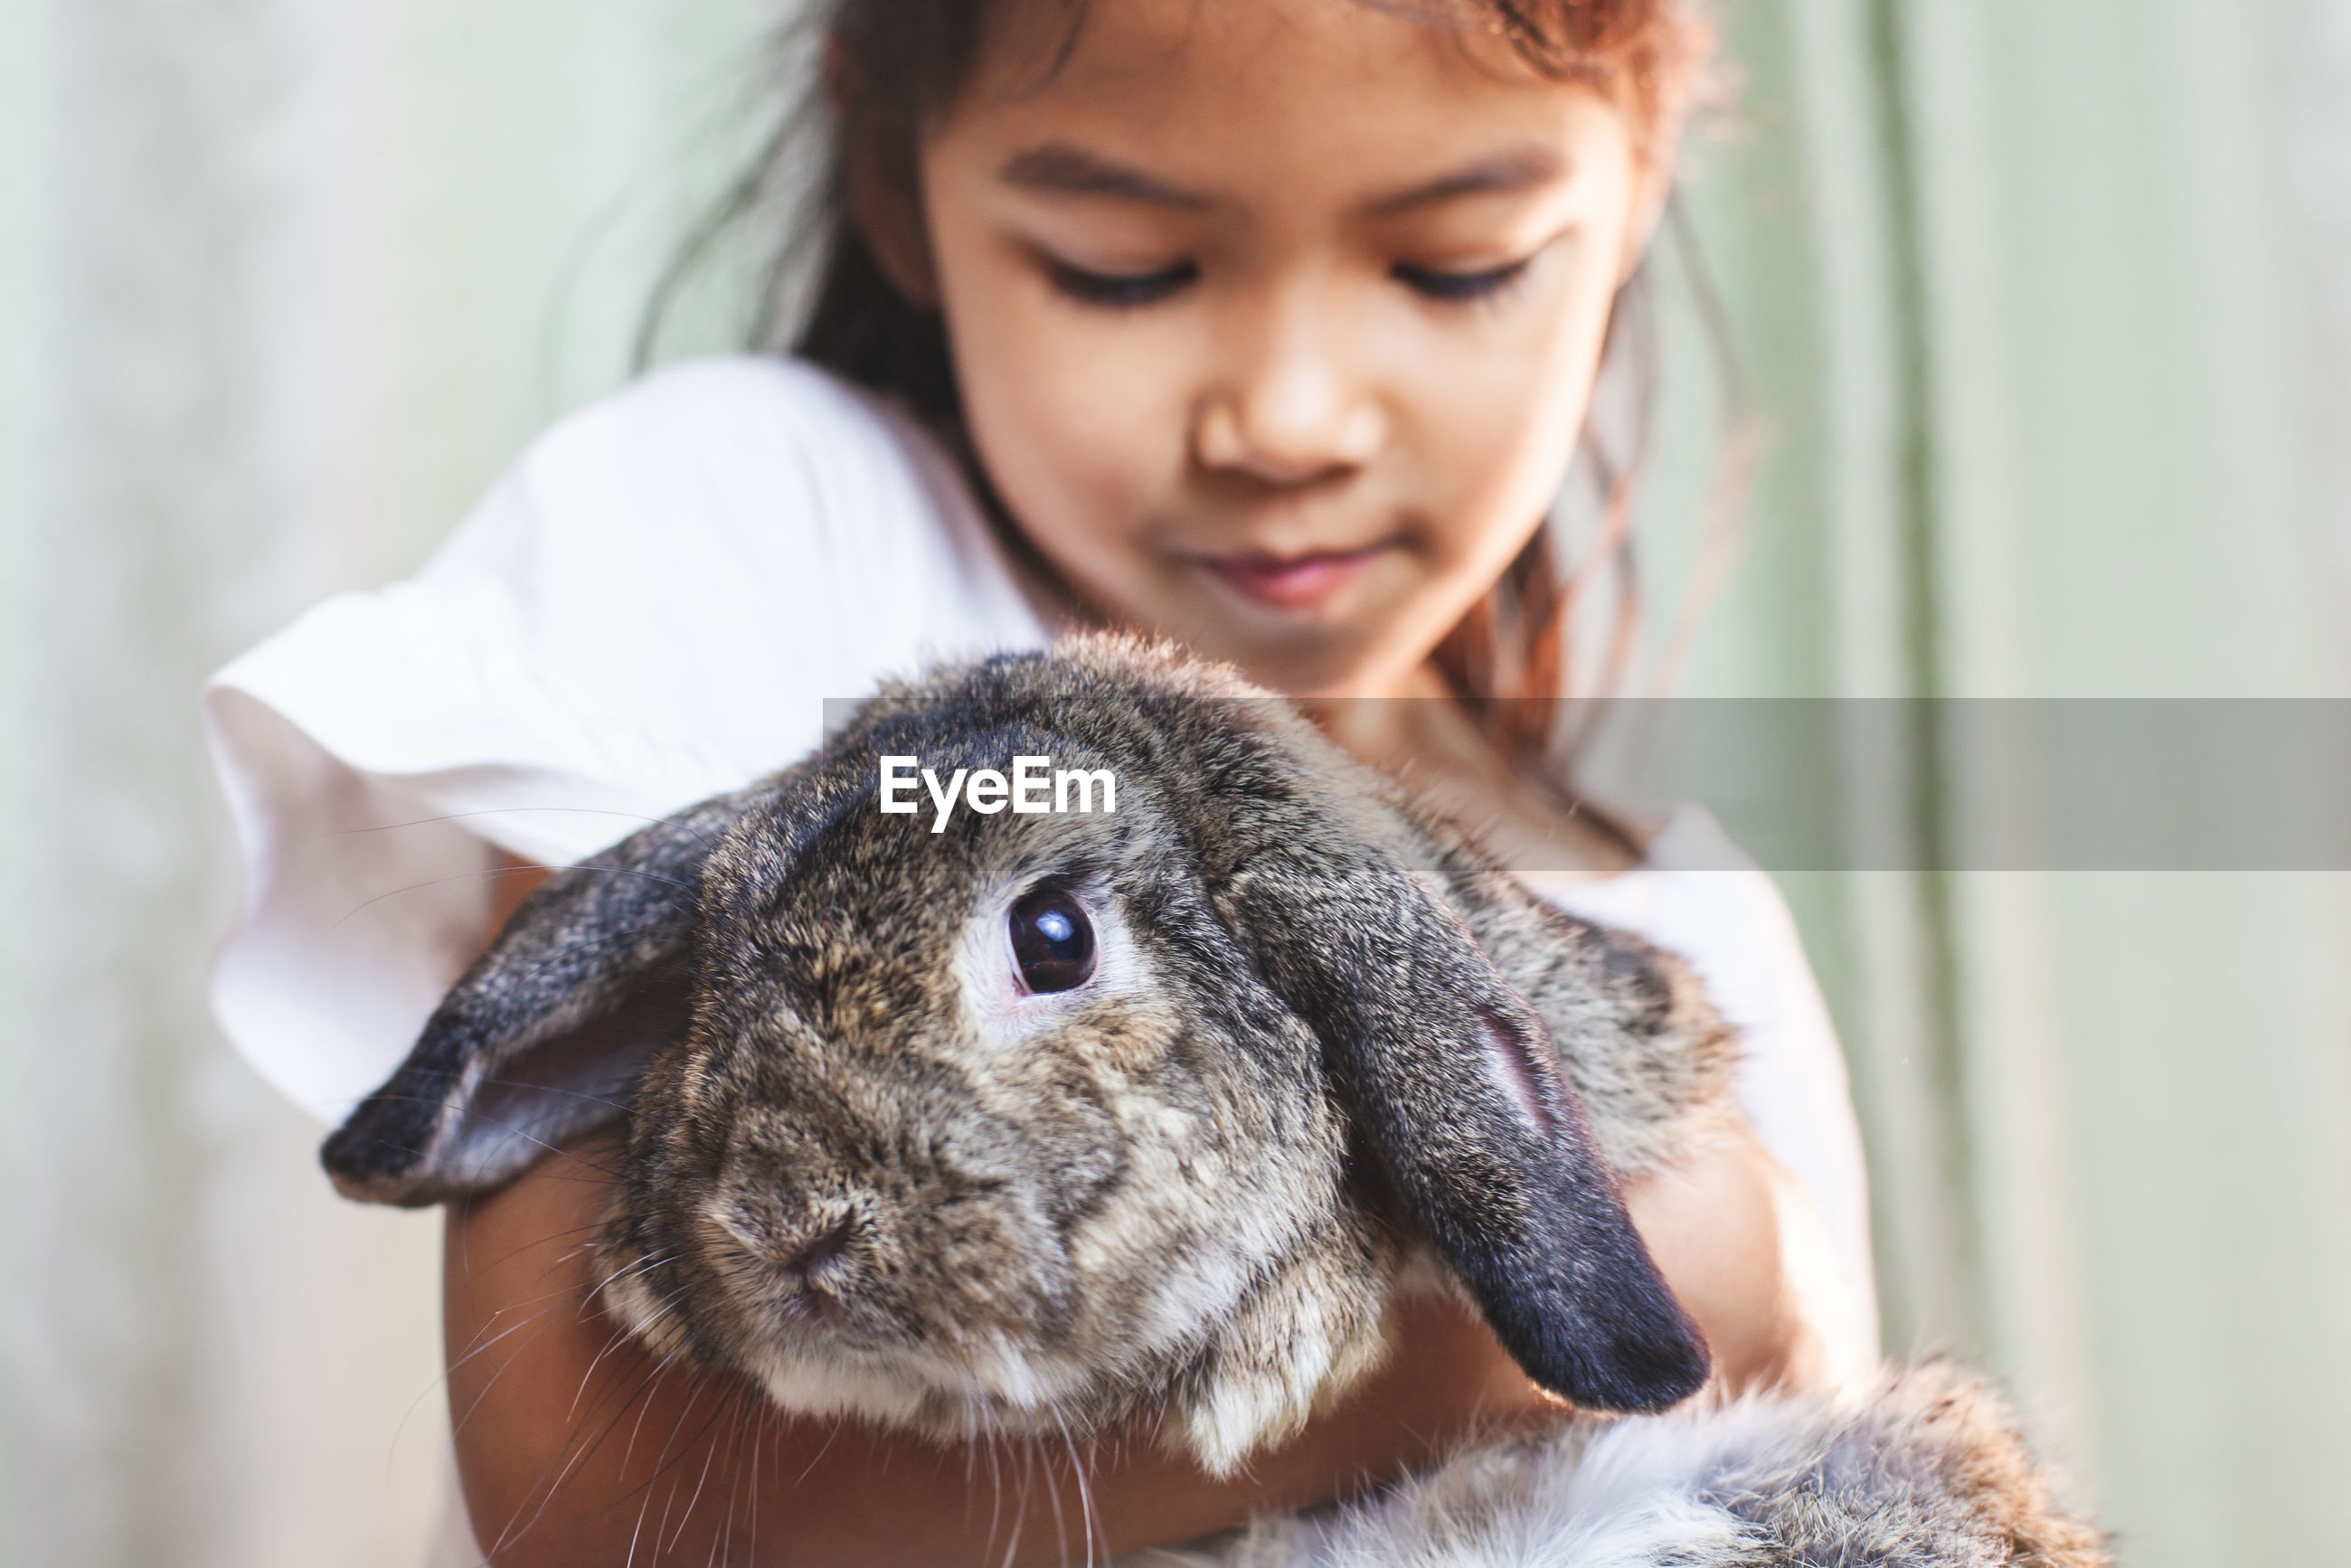 Cute of girl holding rabbit at home